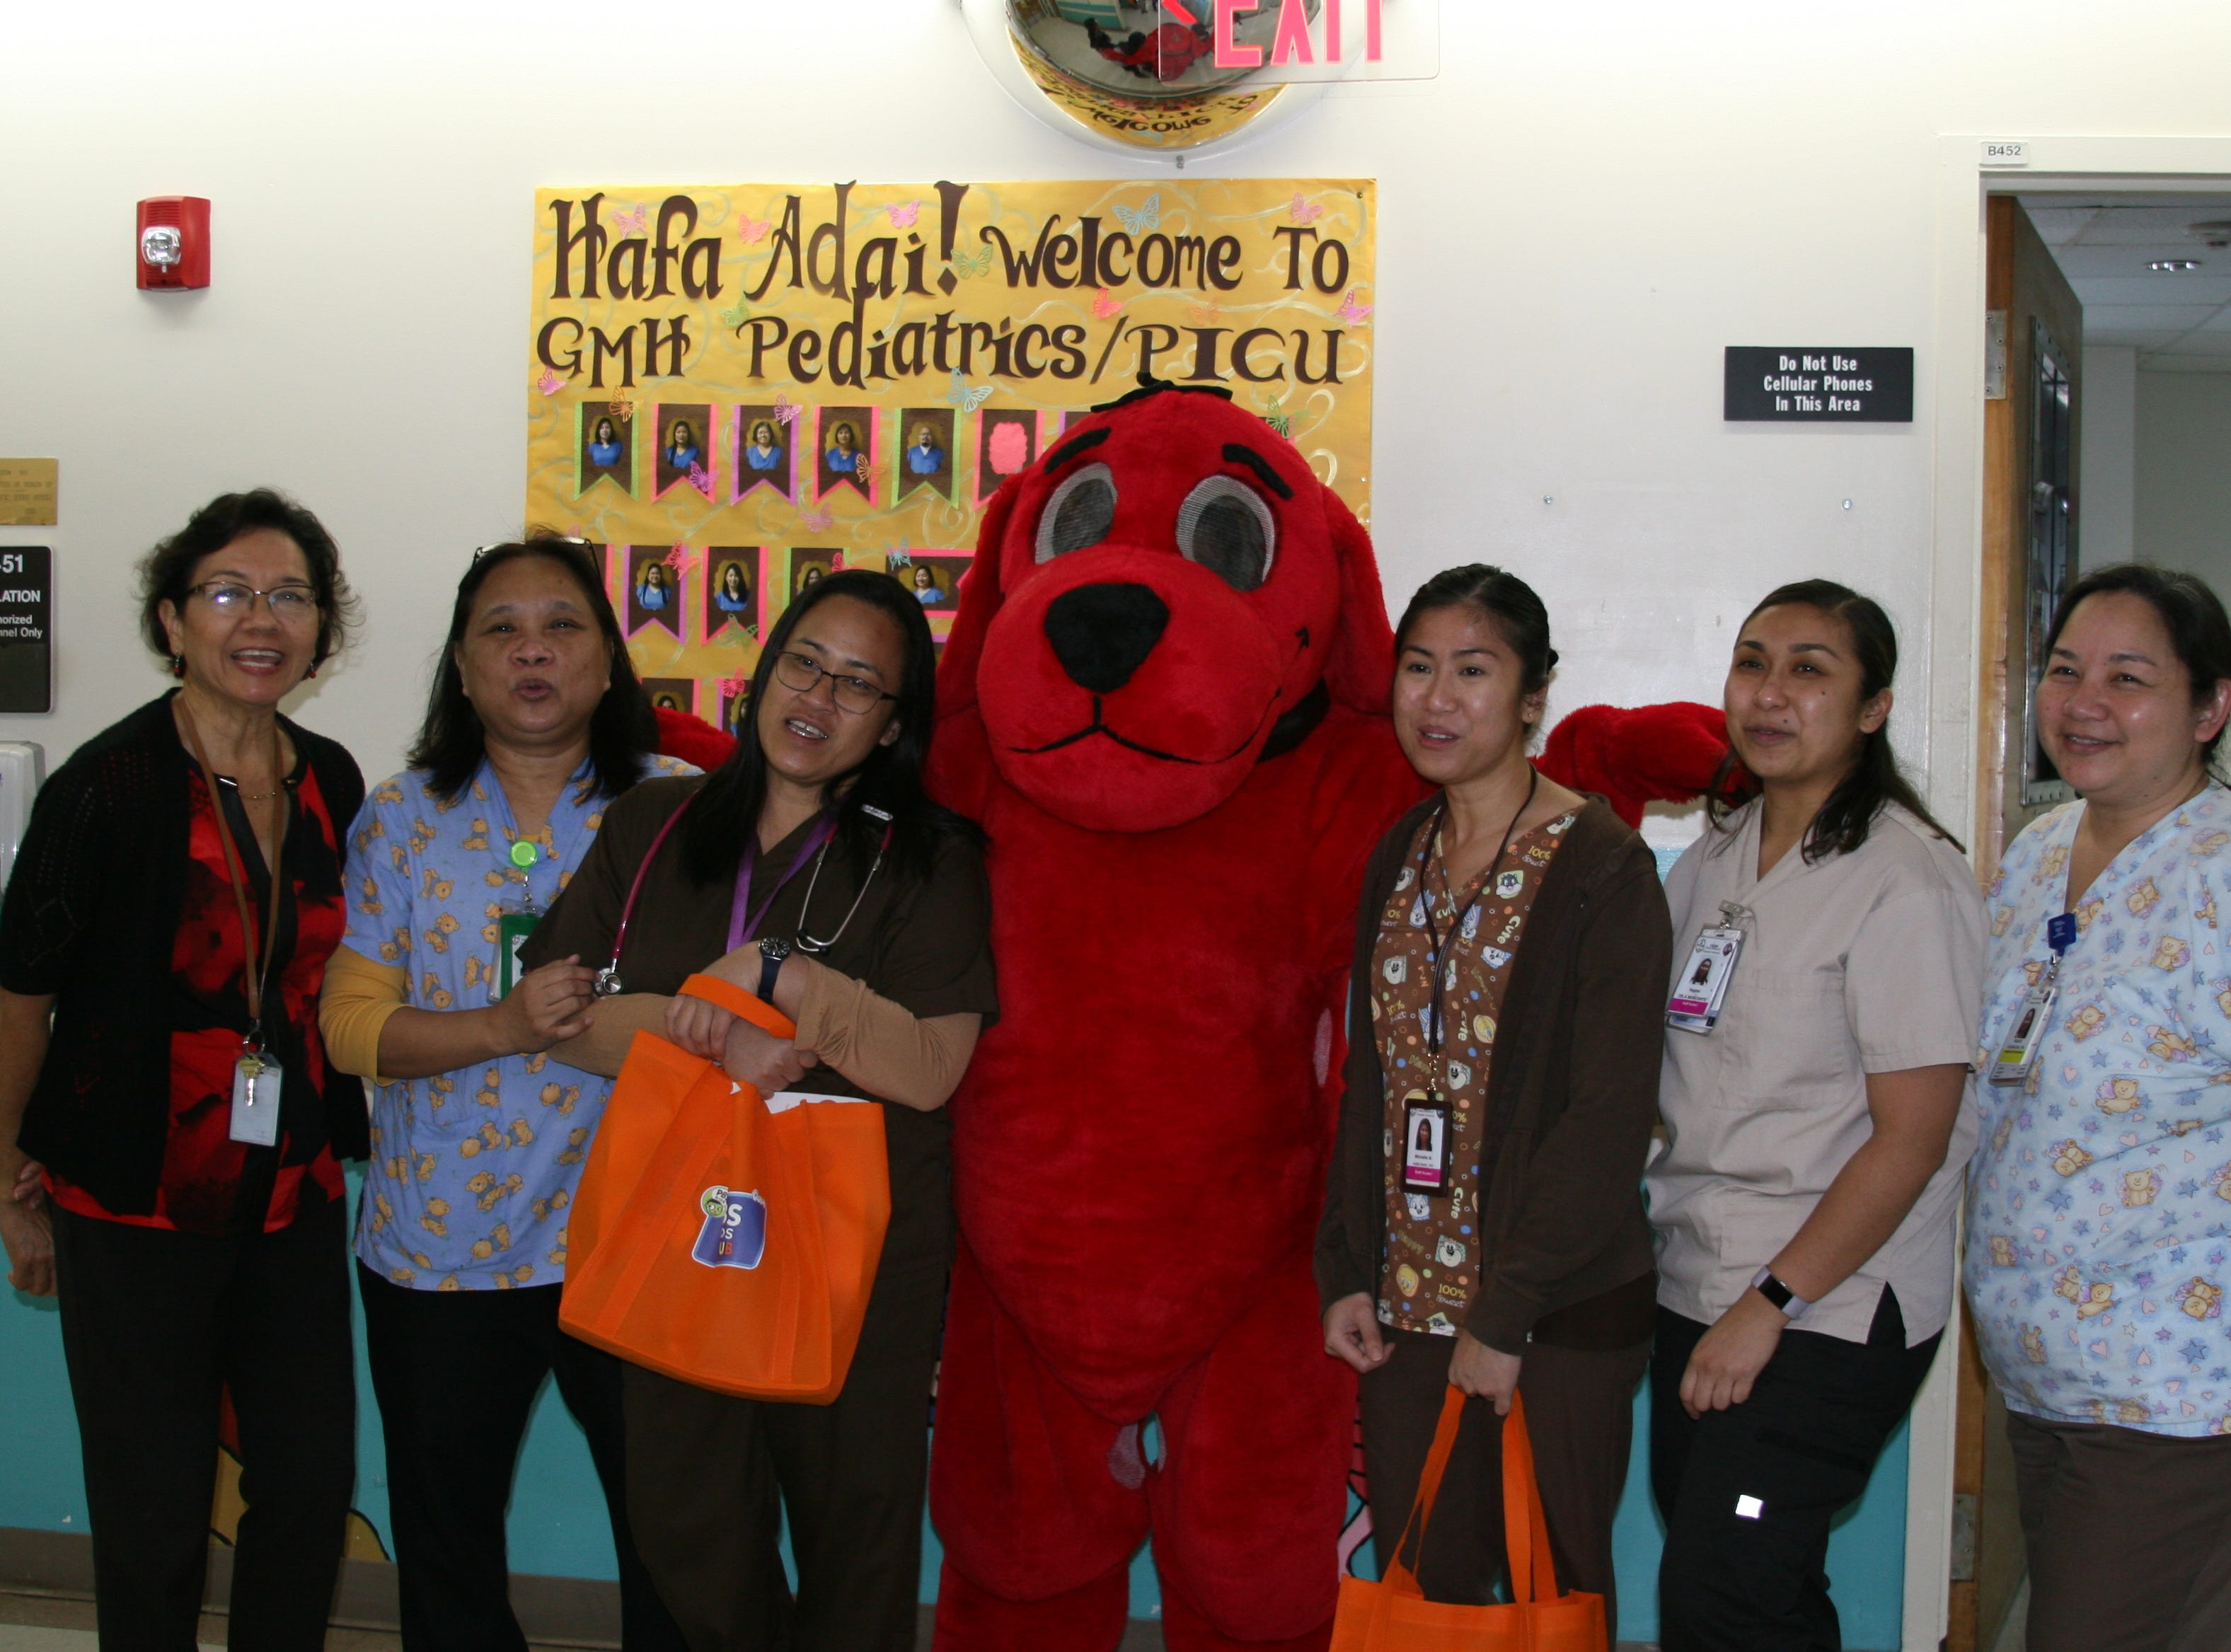 Clifford the Big Red Dog visited the Guam Memorial Hospital on Feb. 14, 2019 as part of an outreach by PBS Guam to visit children at the hospital.